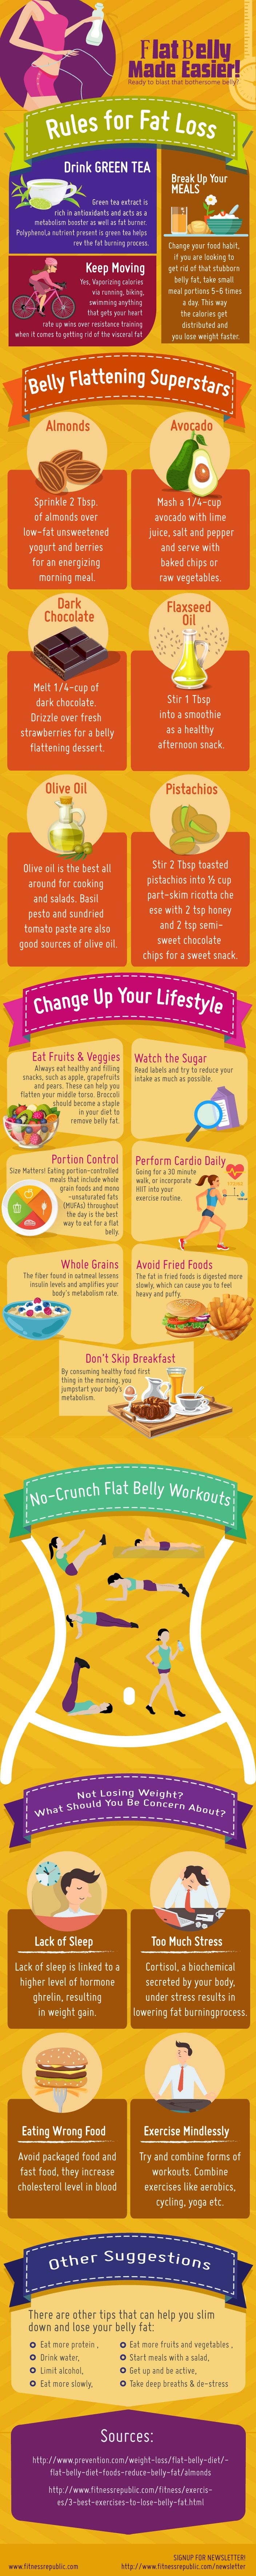 Infographic: Tips For Attaining A Flat Stomach, What To Eat And Do To Burn Fat - DesignTAXI.com